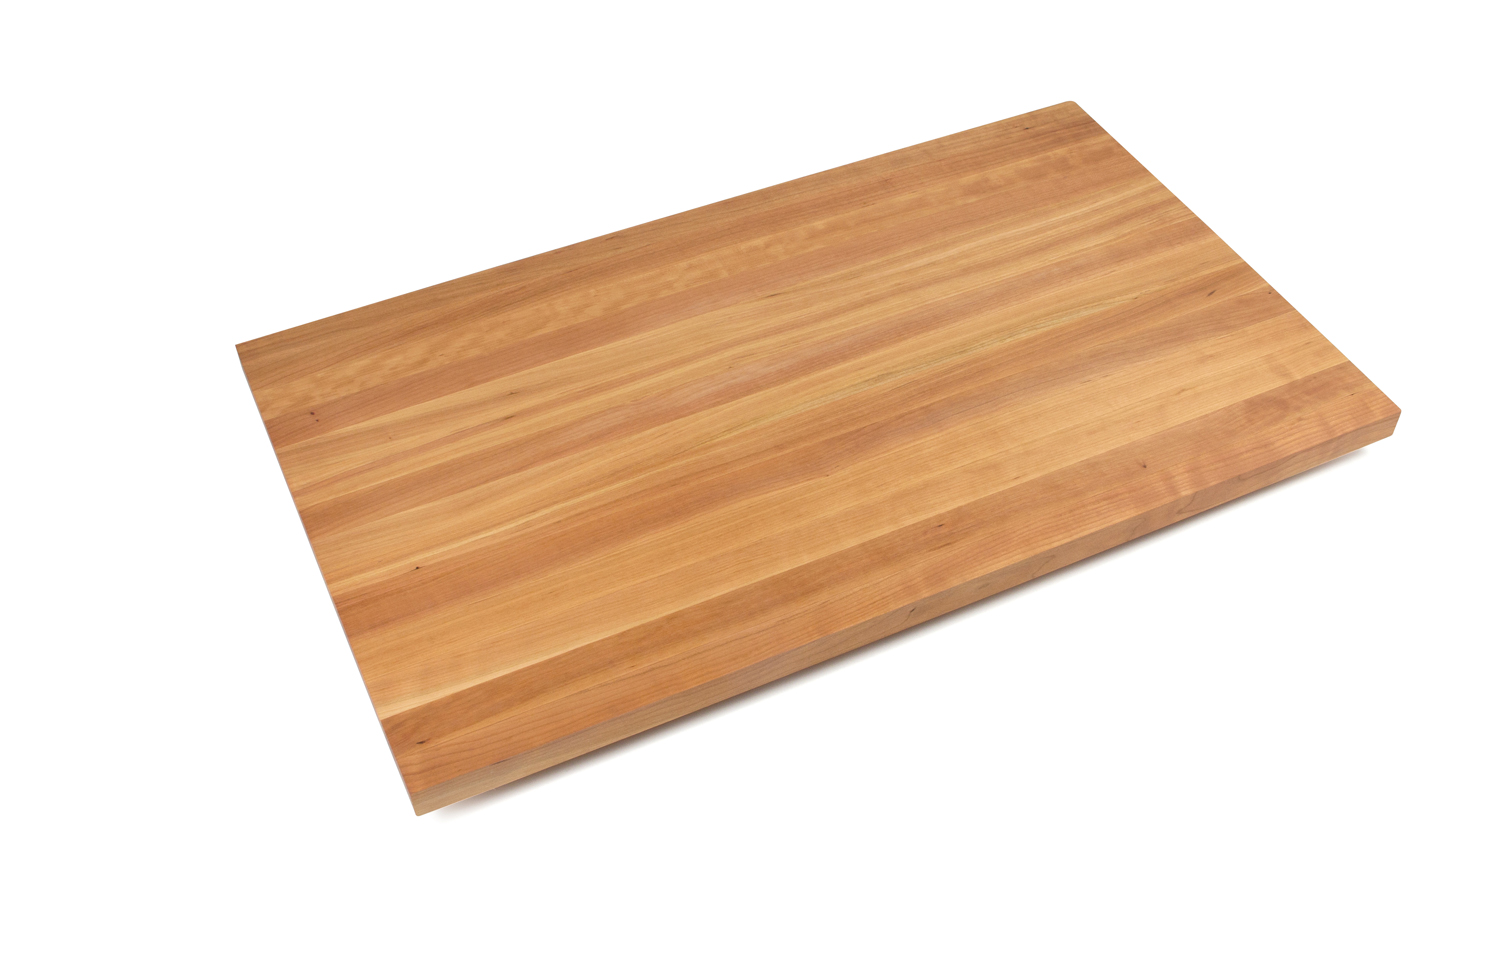 3 inch thick cherry edge grain butcher block countertops 48 inches wide